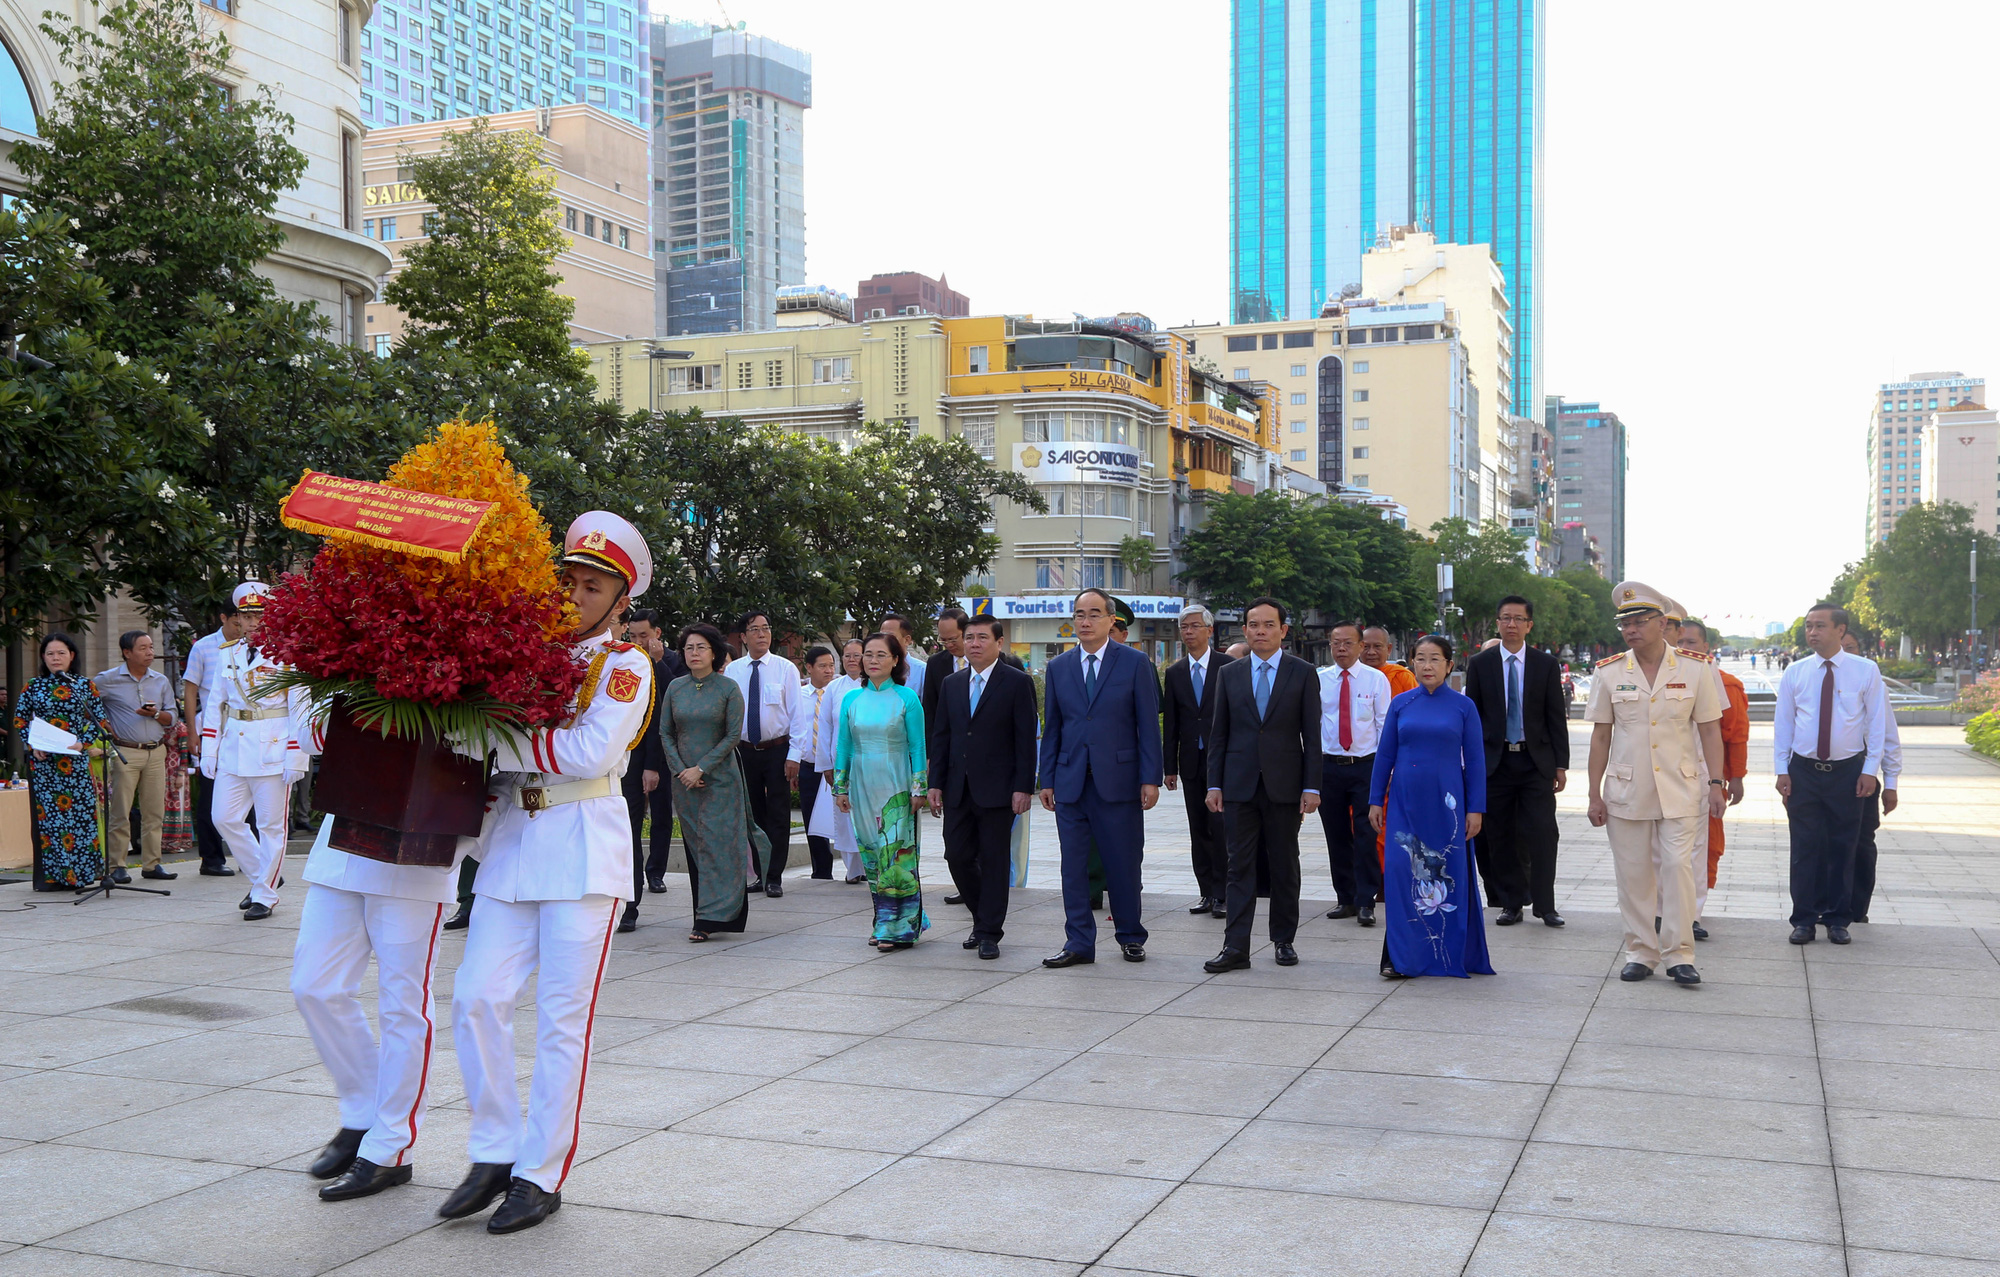 The delegation walks toward the President Ho Chi Minh Statue on Nguyen Hue Walking Street on May 19, 2020. Photo: Thao Le / Tuoi Tre